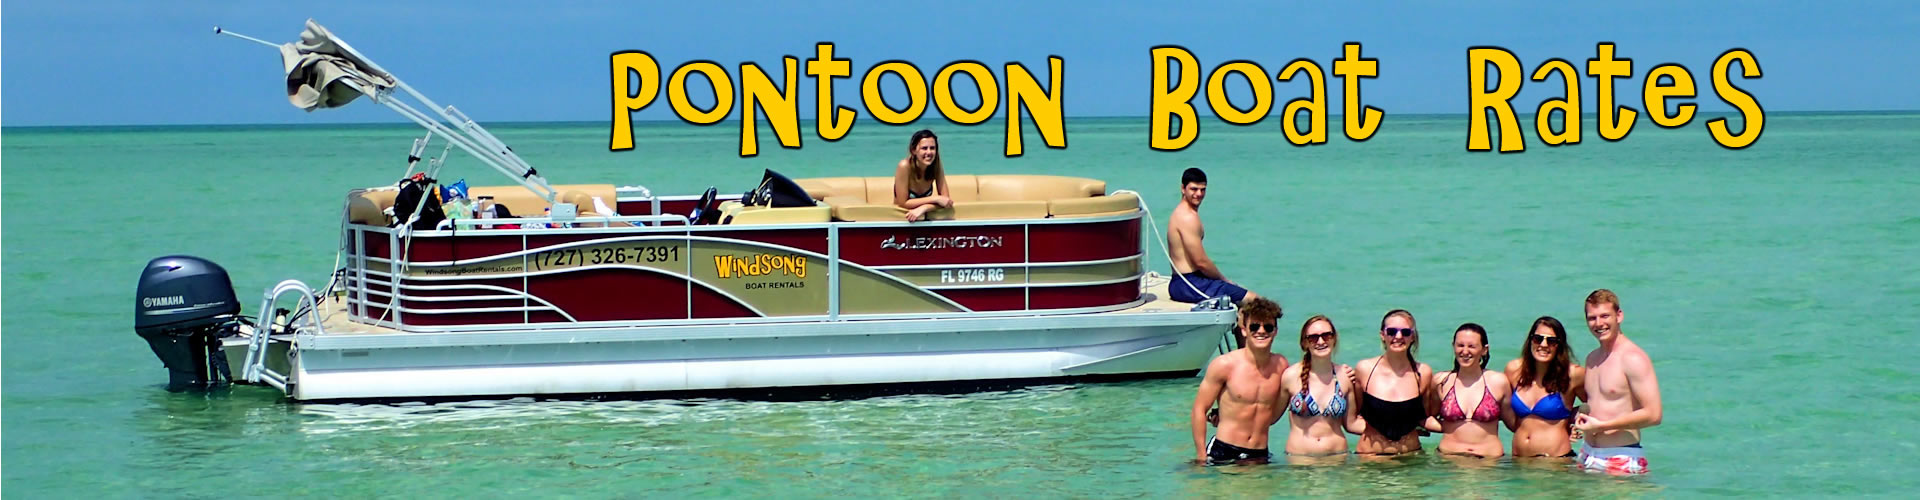 Boat Rental Rates, Tampa